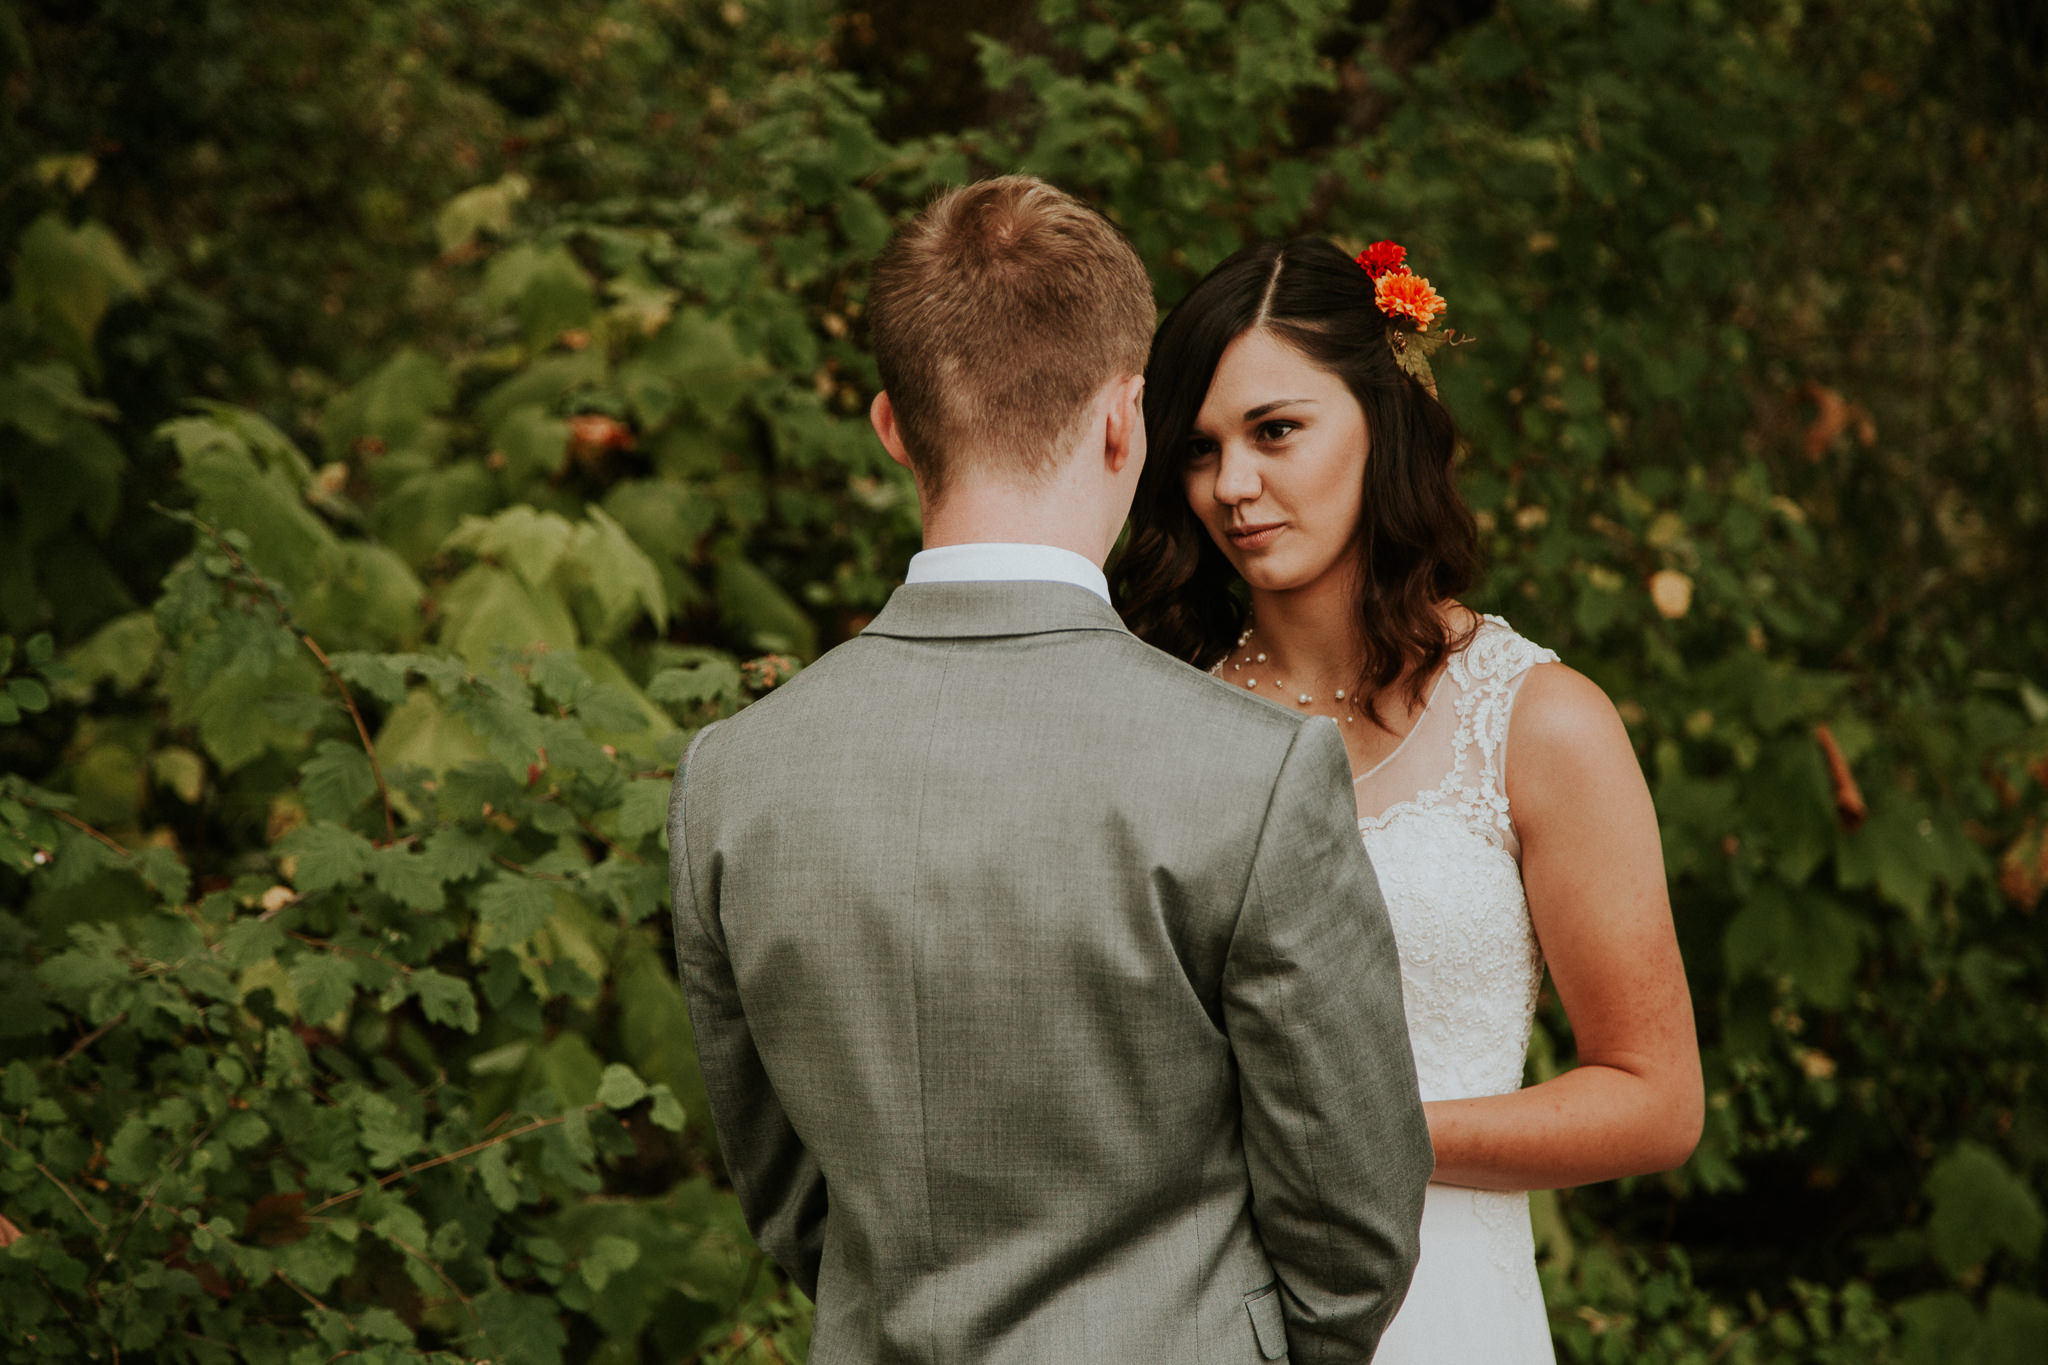 Port-Orchard-Manchester-Park-elopement-Bride-And-Groom-35.jpg